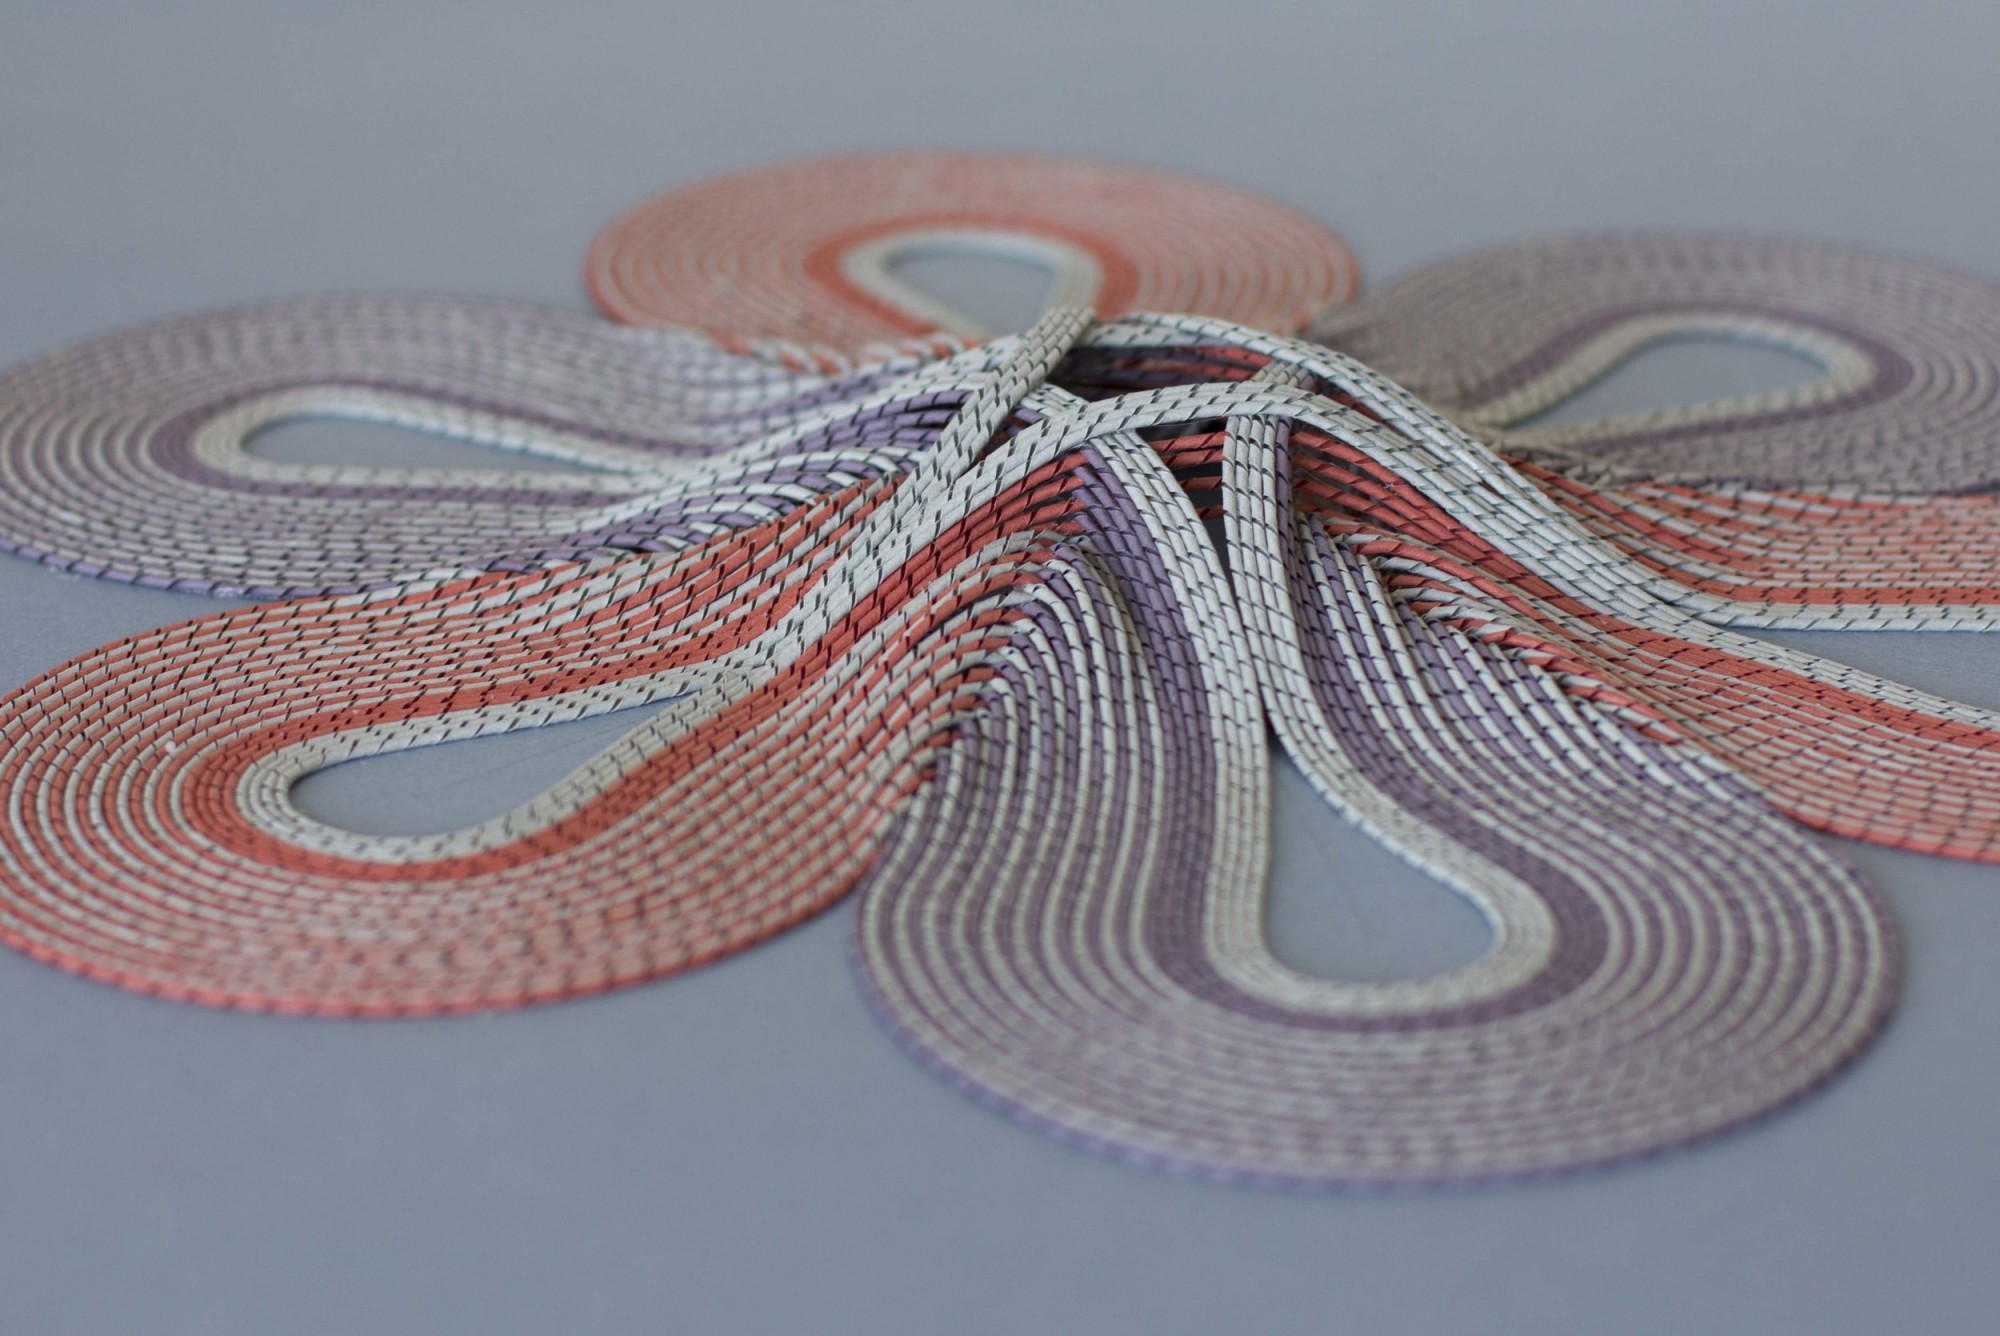 New Intricate Curled Paper Tapestries by Gunjan Aylawadi - Braid